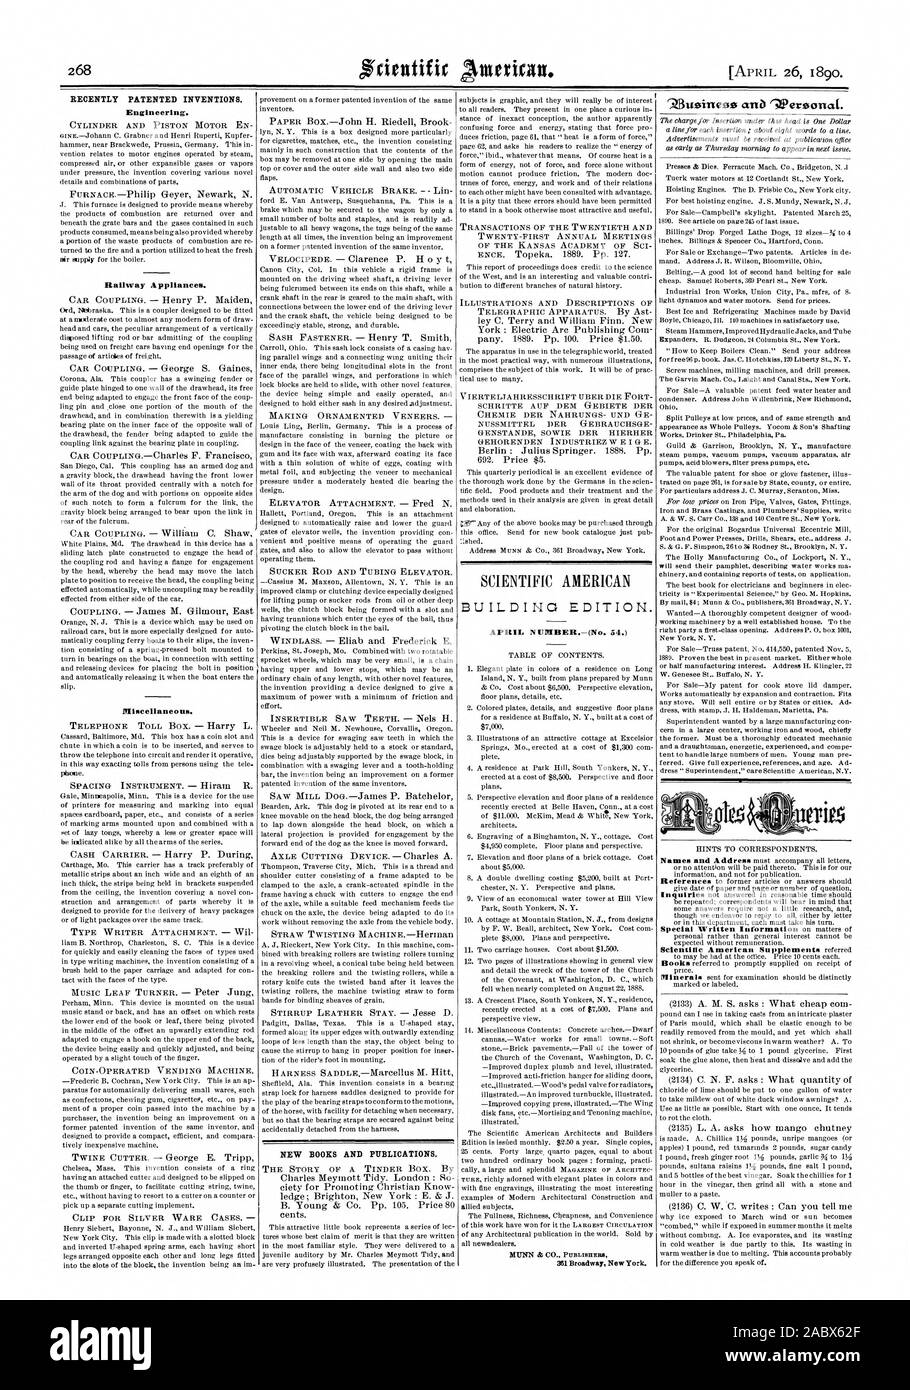 RECENTLY PATENTED INVENTIONS. Engineering. Railway Appliances. Miscellaneous. NEW BOOKS AND PUBLICATIONS. SCIENTIFIC AMERICAN BUILDING EDITION., 1890-04-11 Stock Photo